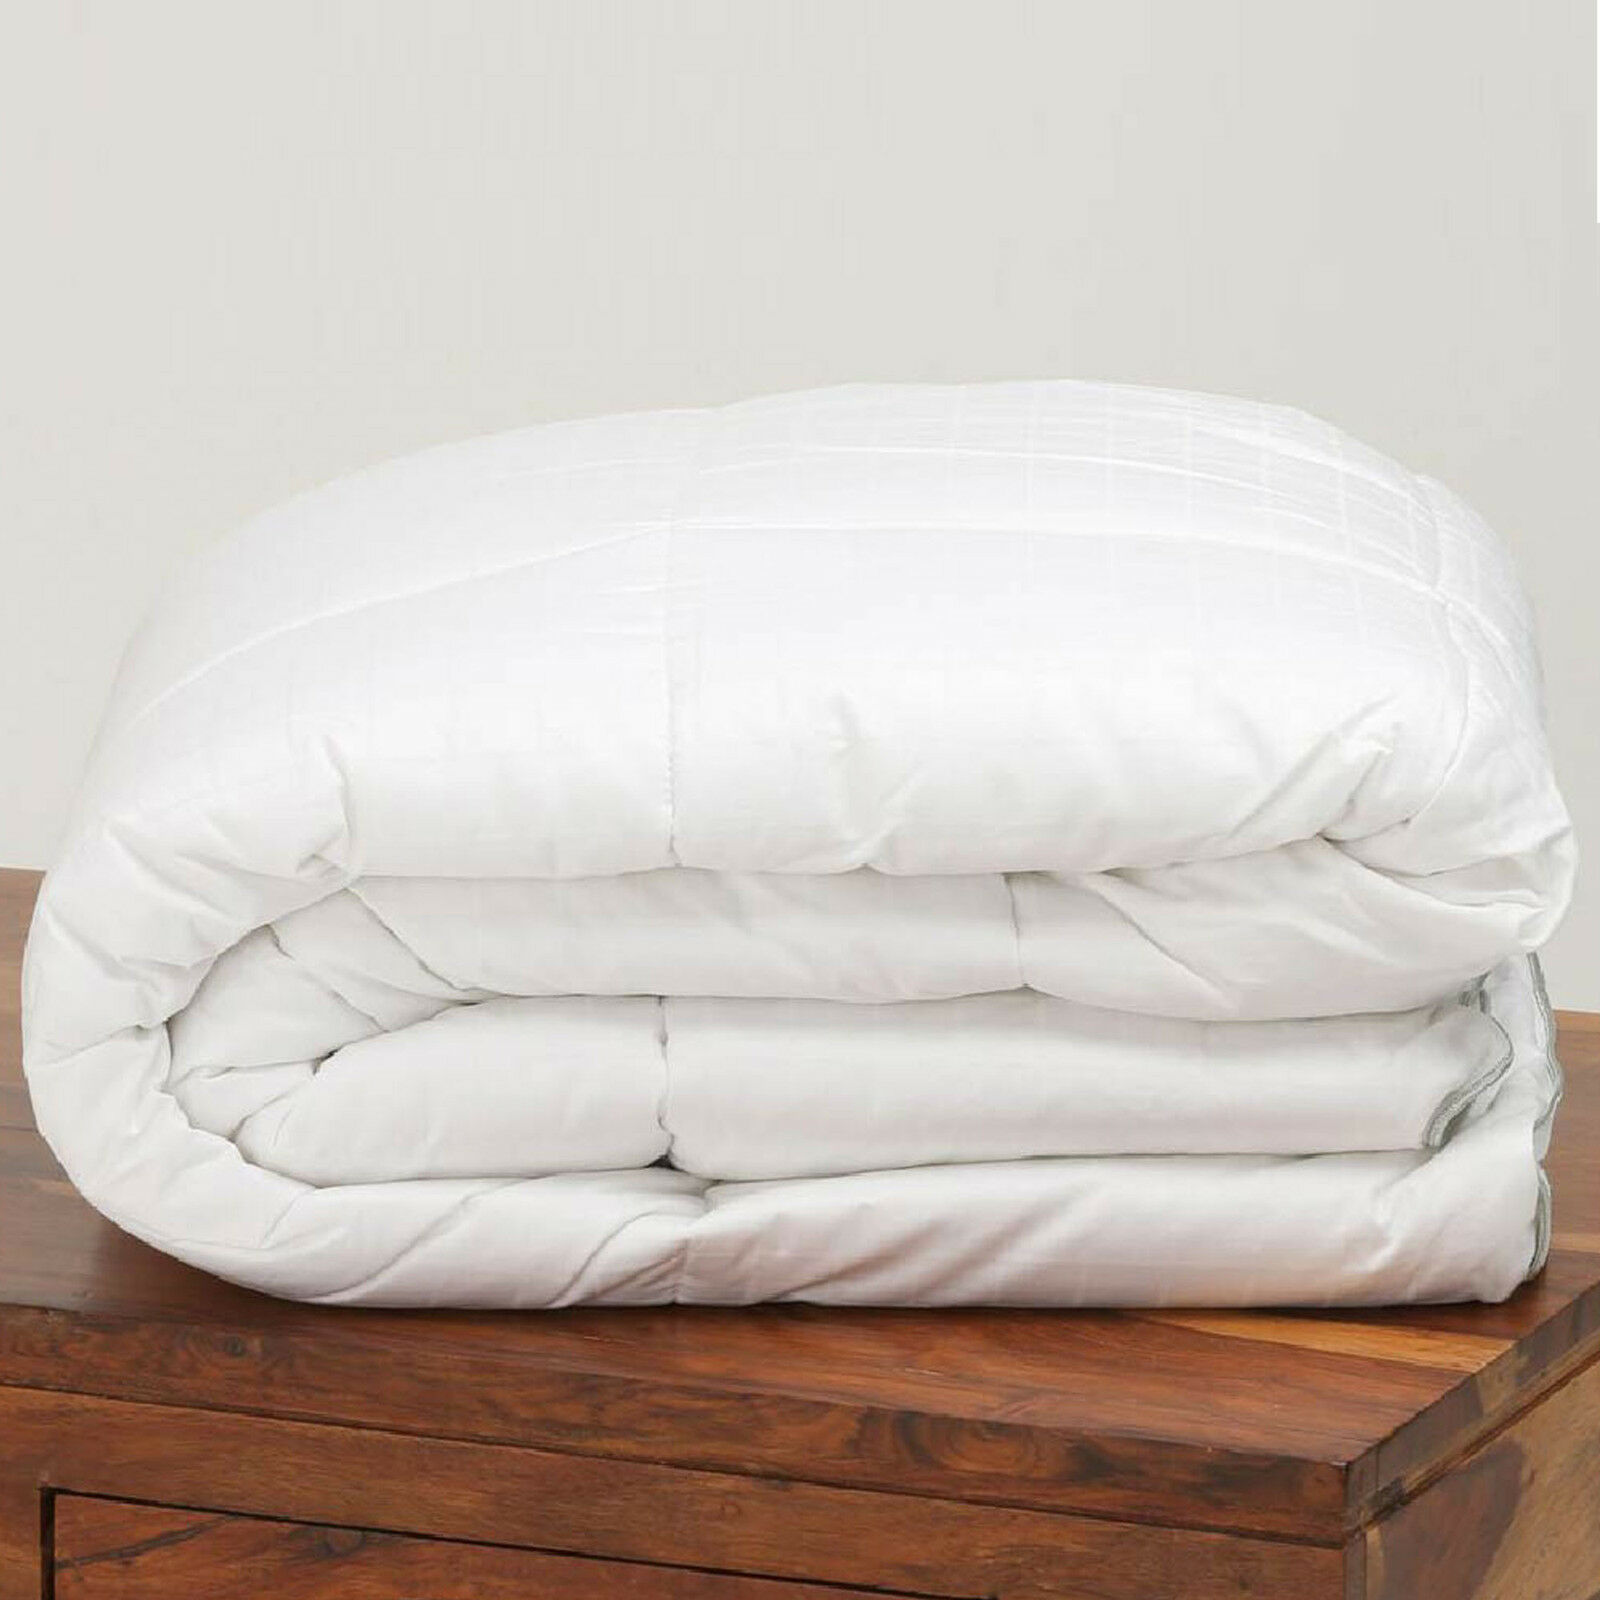 Kensingtons® New WOOLMARKED SOFT Merino Wool Luxury Mattress Topper Bed Enhancer